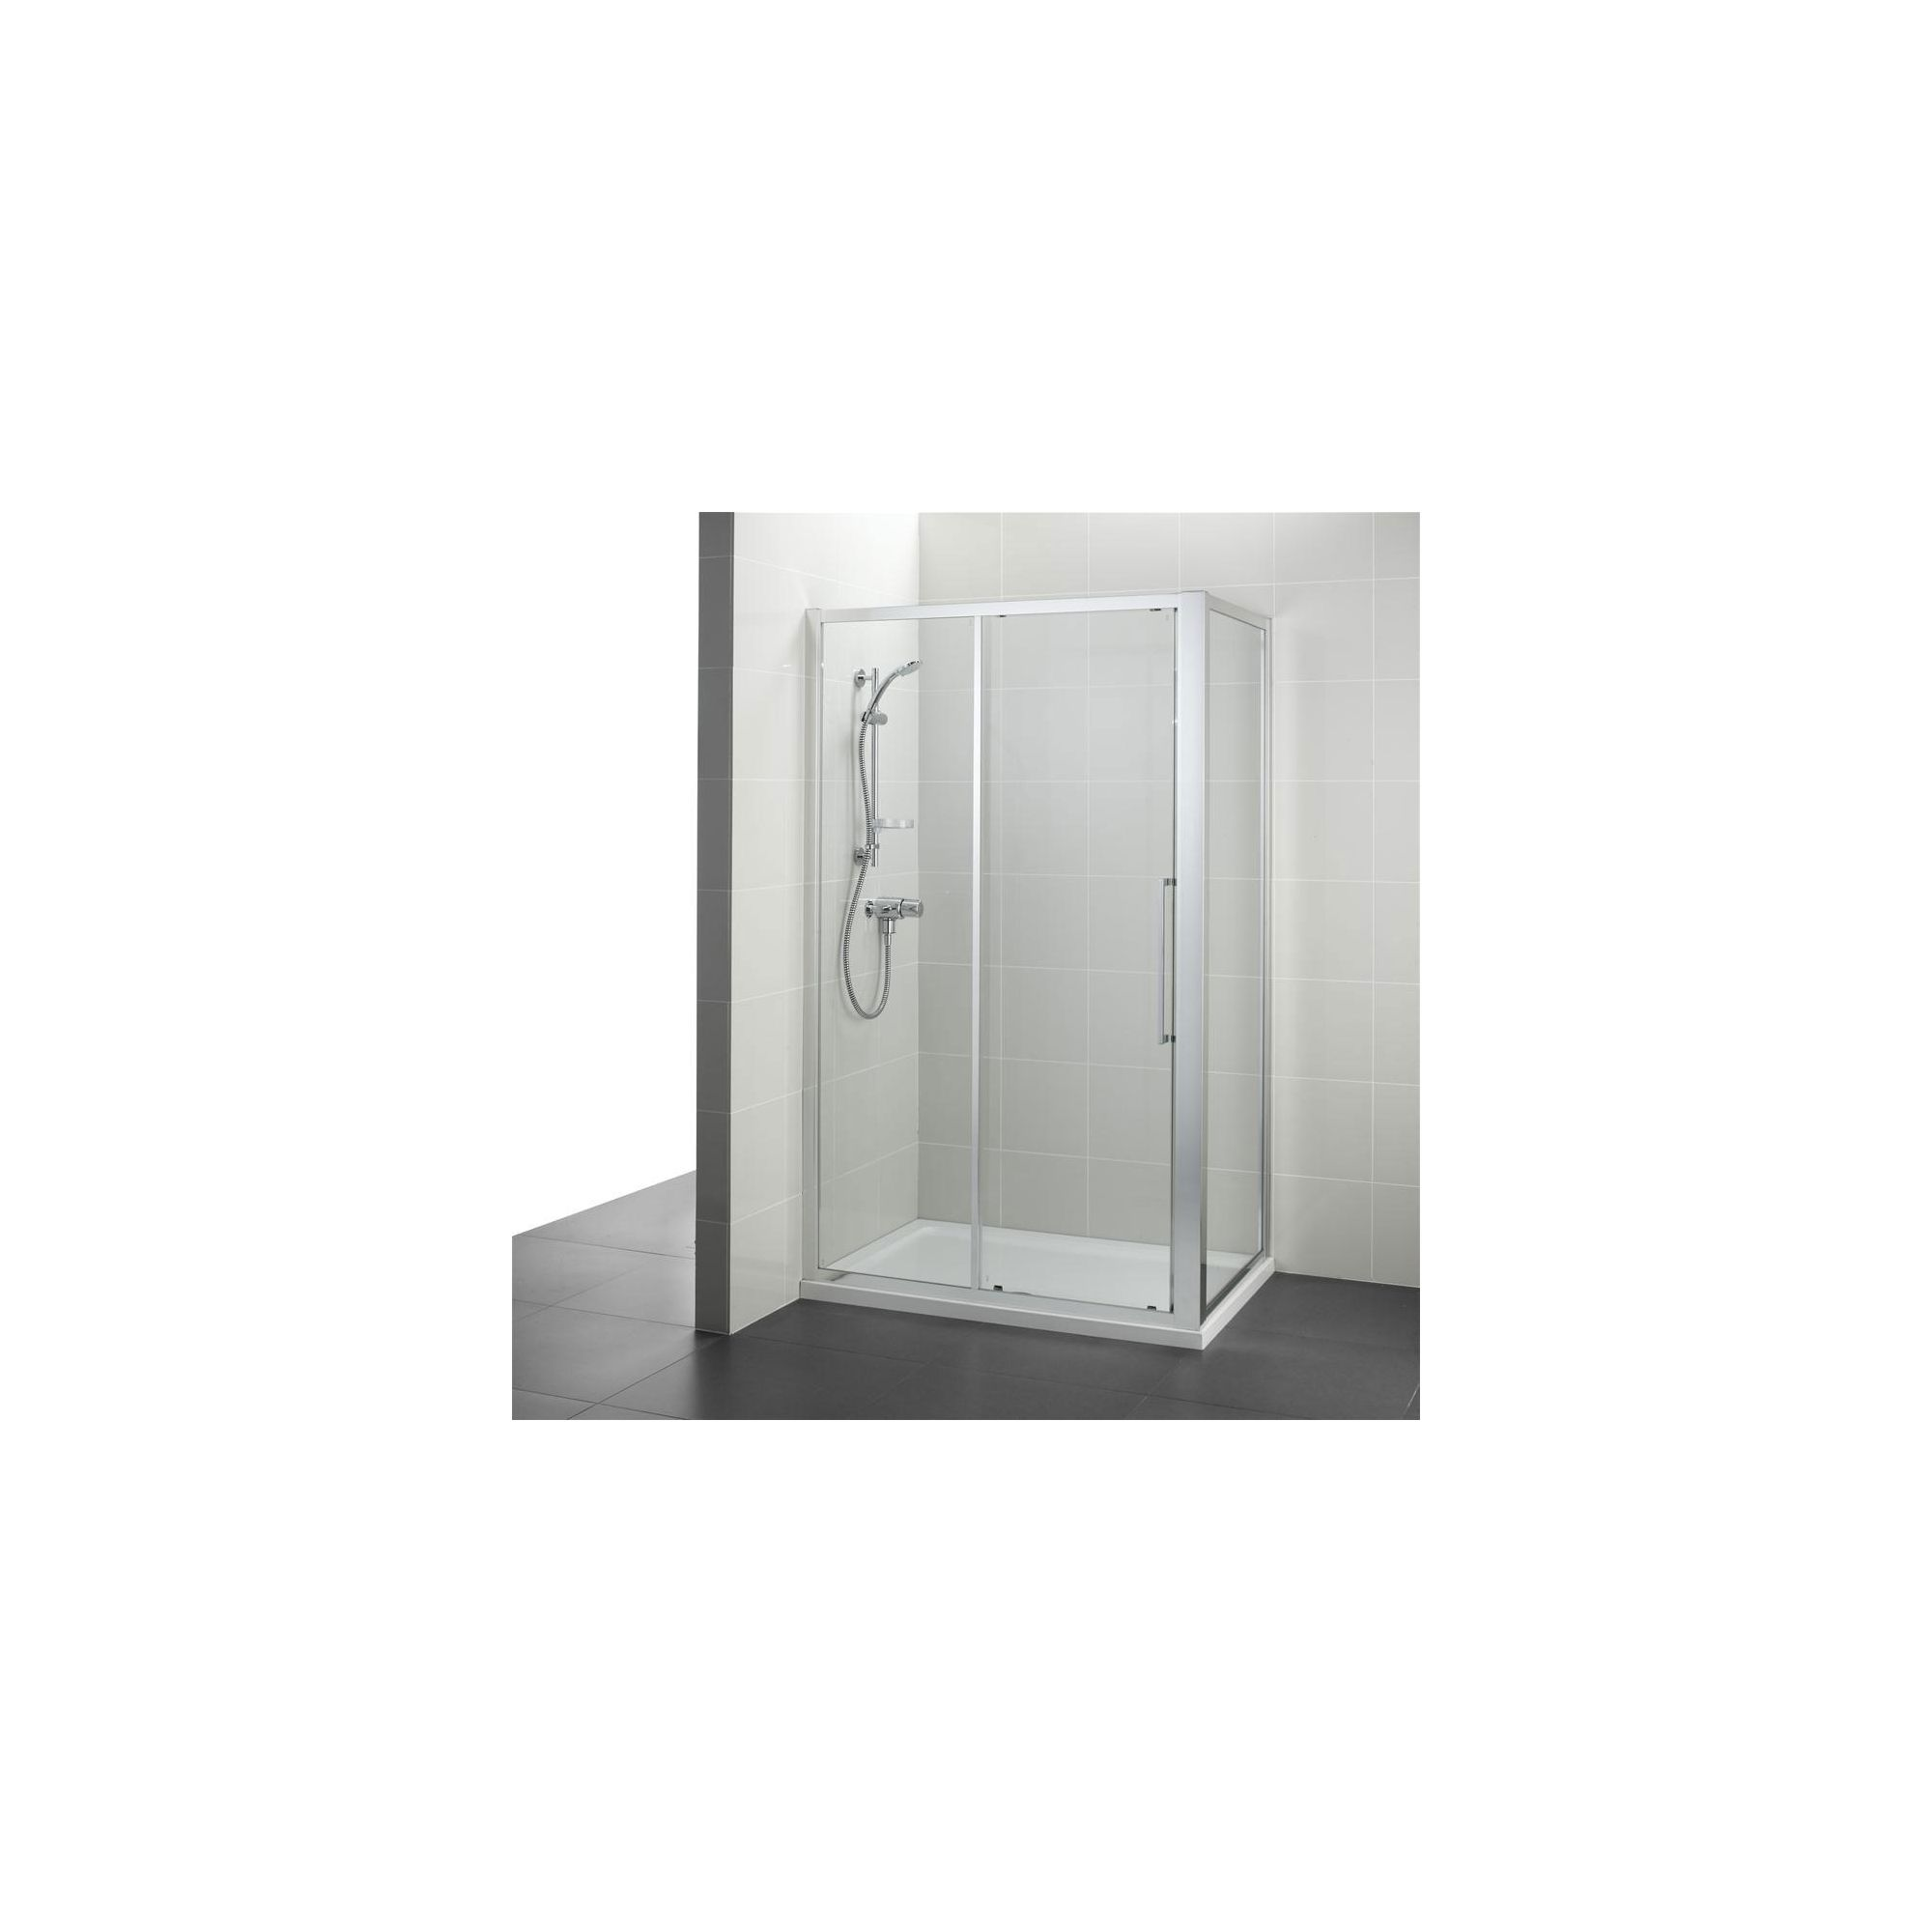 Ideal Standard Kubo Bi-Fold Door Shower Enclosure, 900mm x 900mm, Bright Silver Frame, Low Profile Tray at Tesco Direct